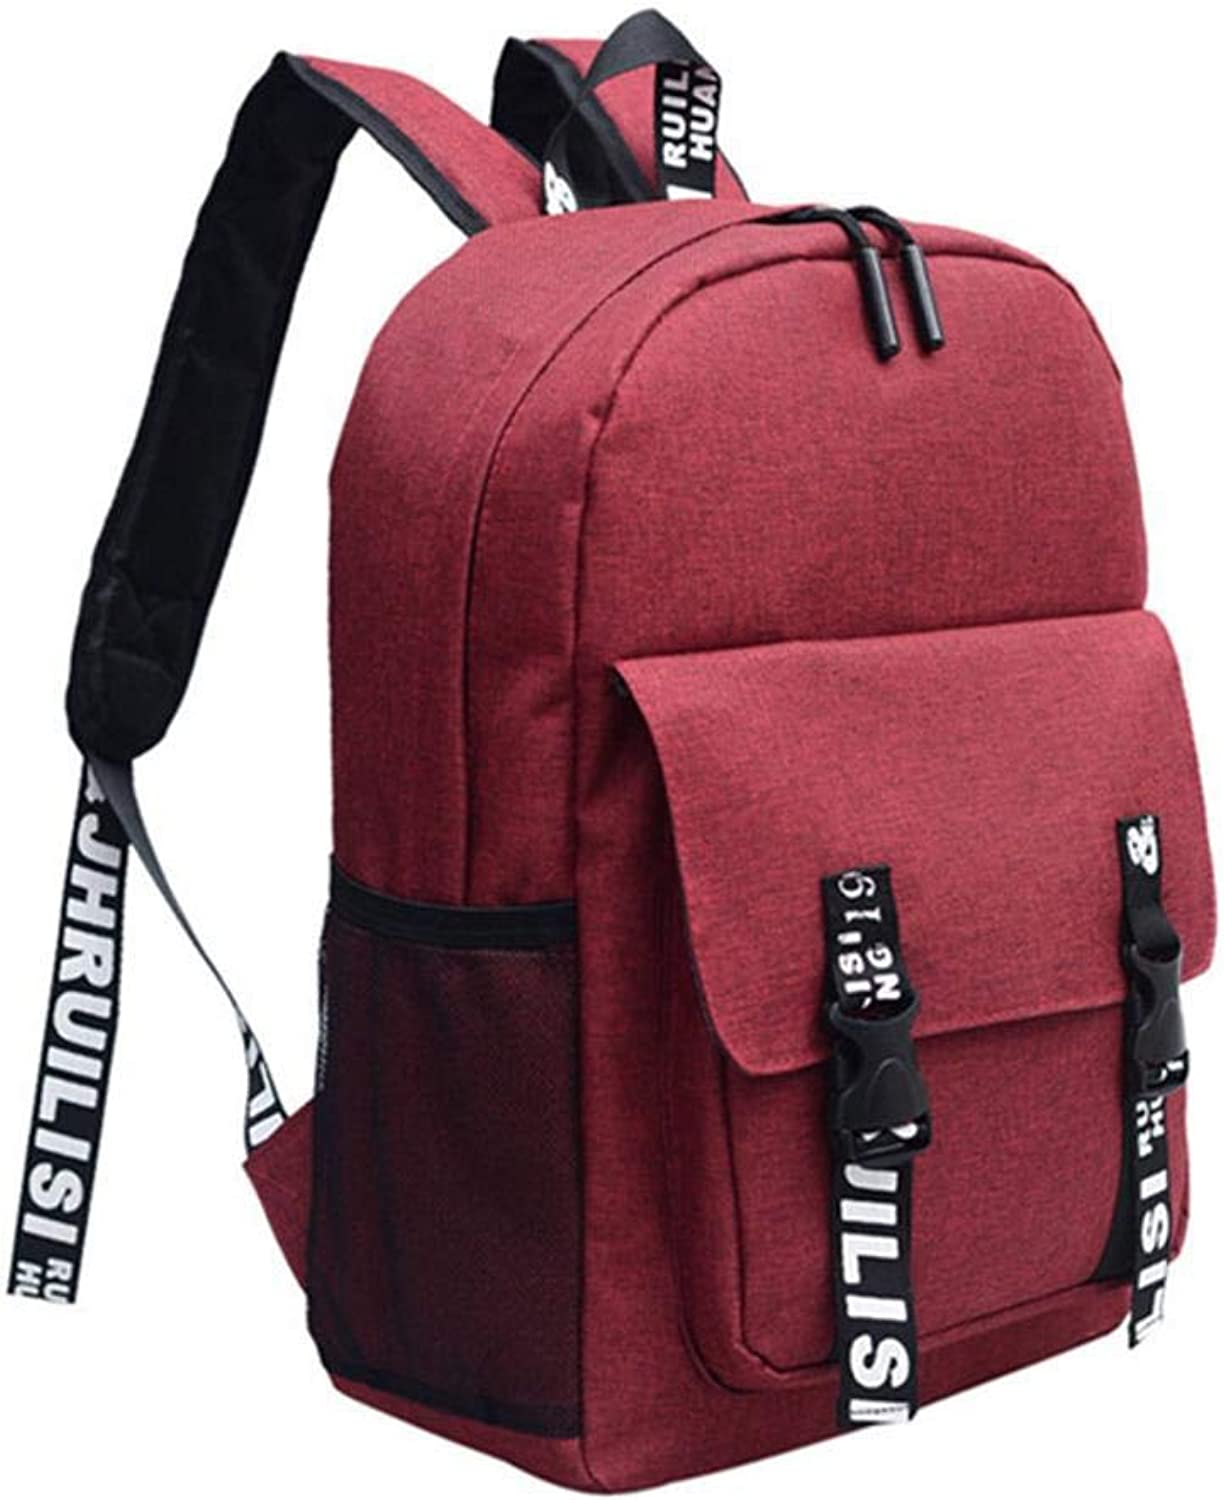 Mayanyan Korean Canvas Backpack Bag Men's College Wind Bag Trend Simple Casual Fashion Student Backpack